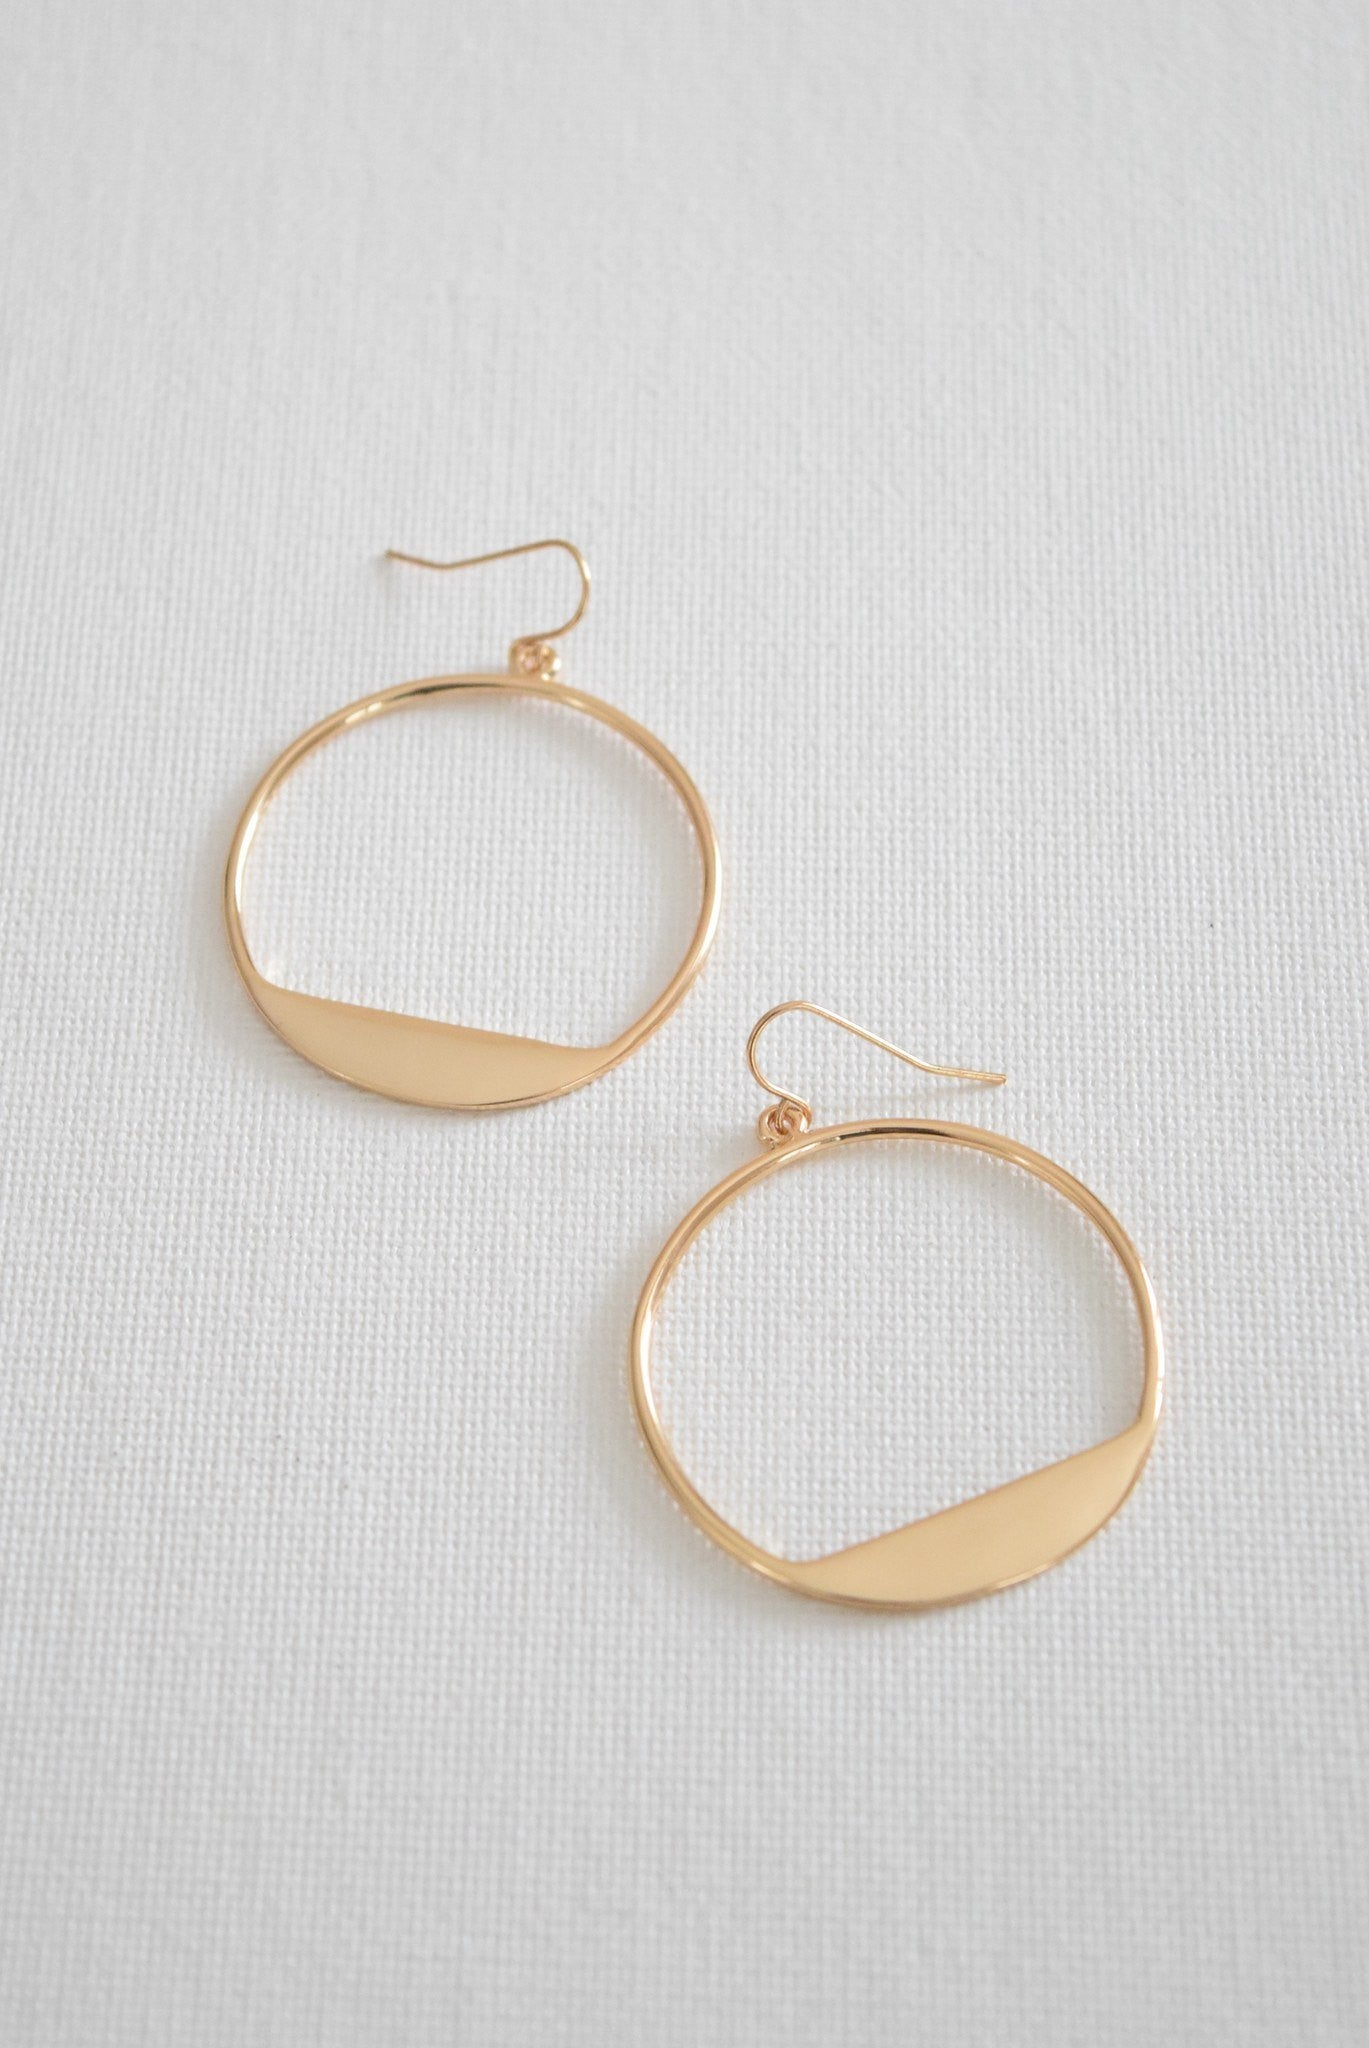 Ophelia Hoop Earrings - Earrings - MOD&SOUL Vintage Style Contemporary Fashion Jewelry - MOD&SOUL